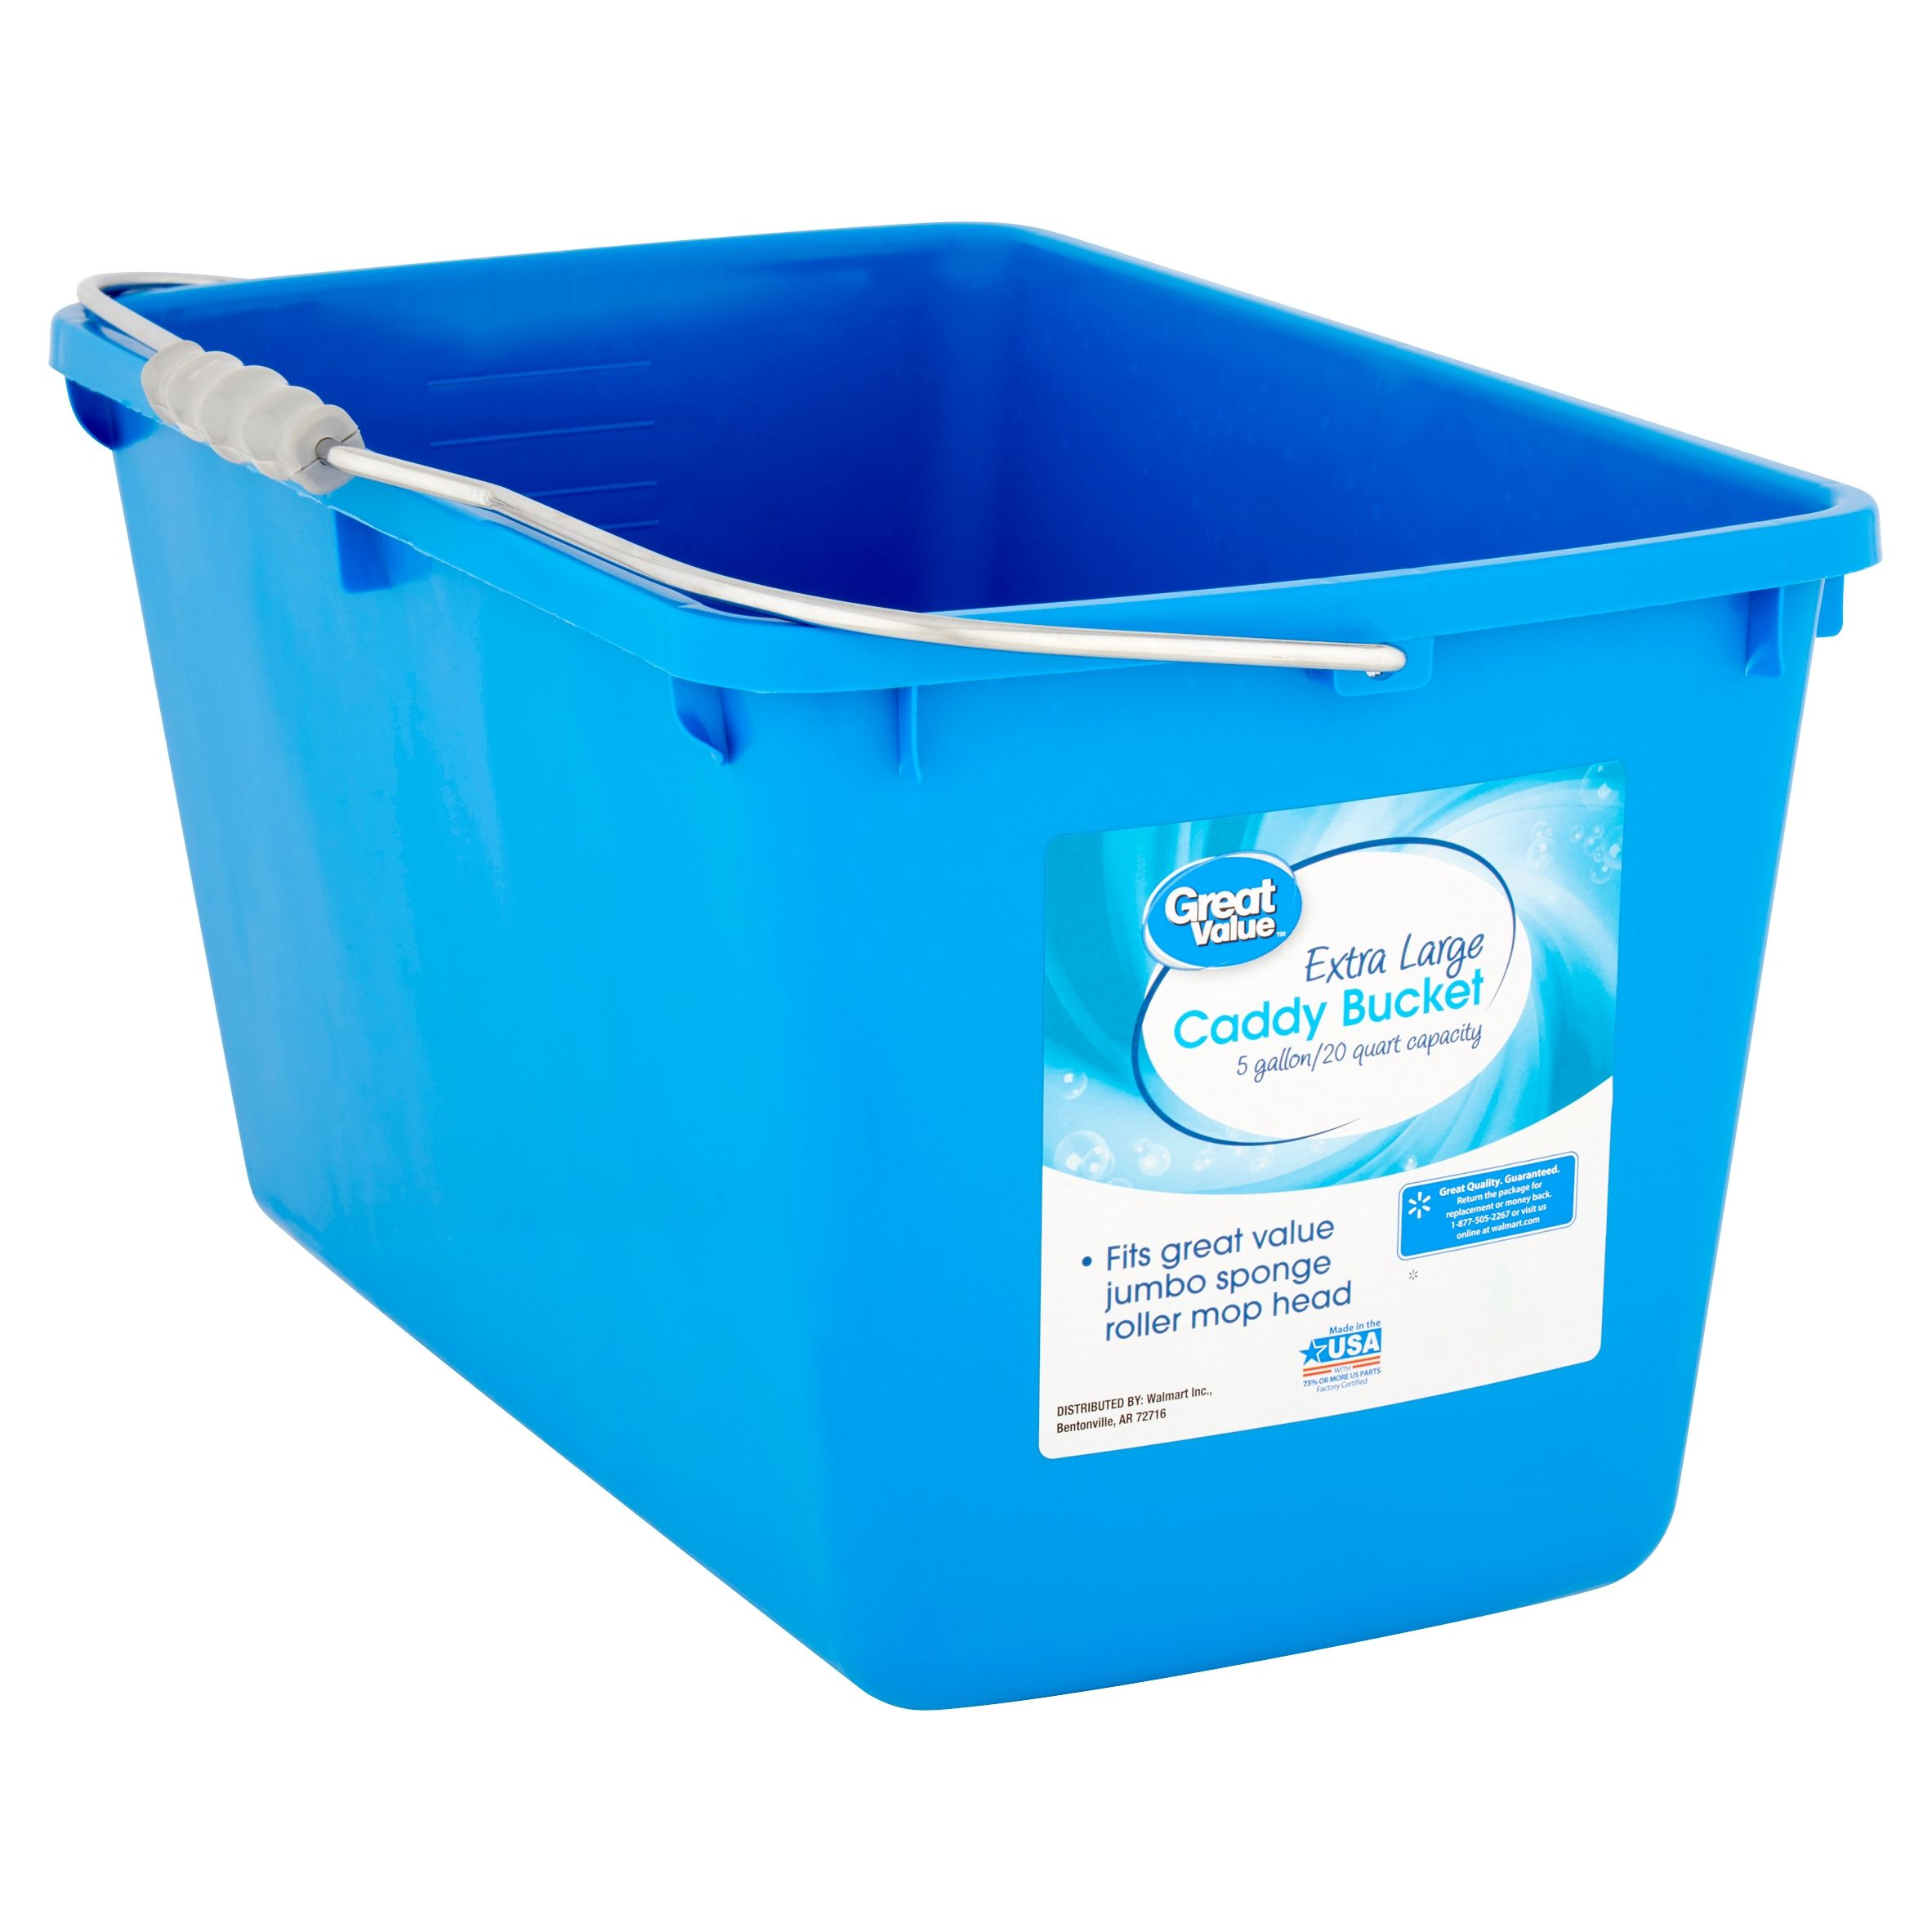 Free 2 Day Shipping Buy Great Value 5 Gallon Extra Large Caddy Bucket At Walmart Com In 2020 Caddy Extra Large Sponge Rollers